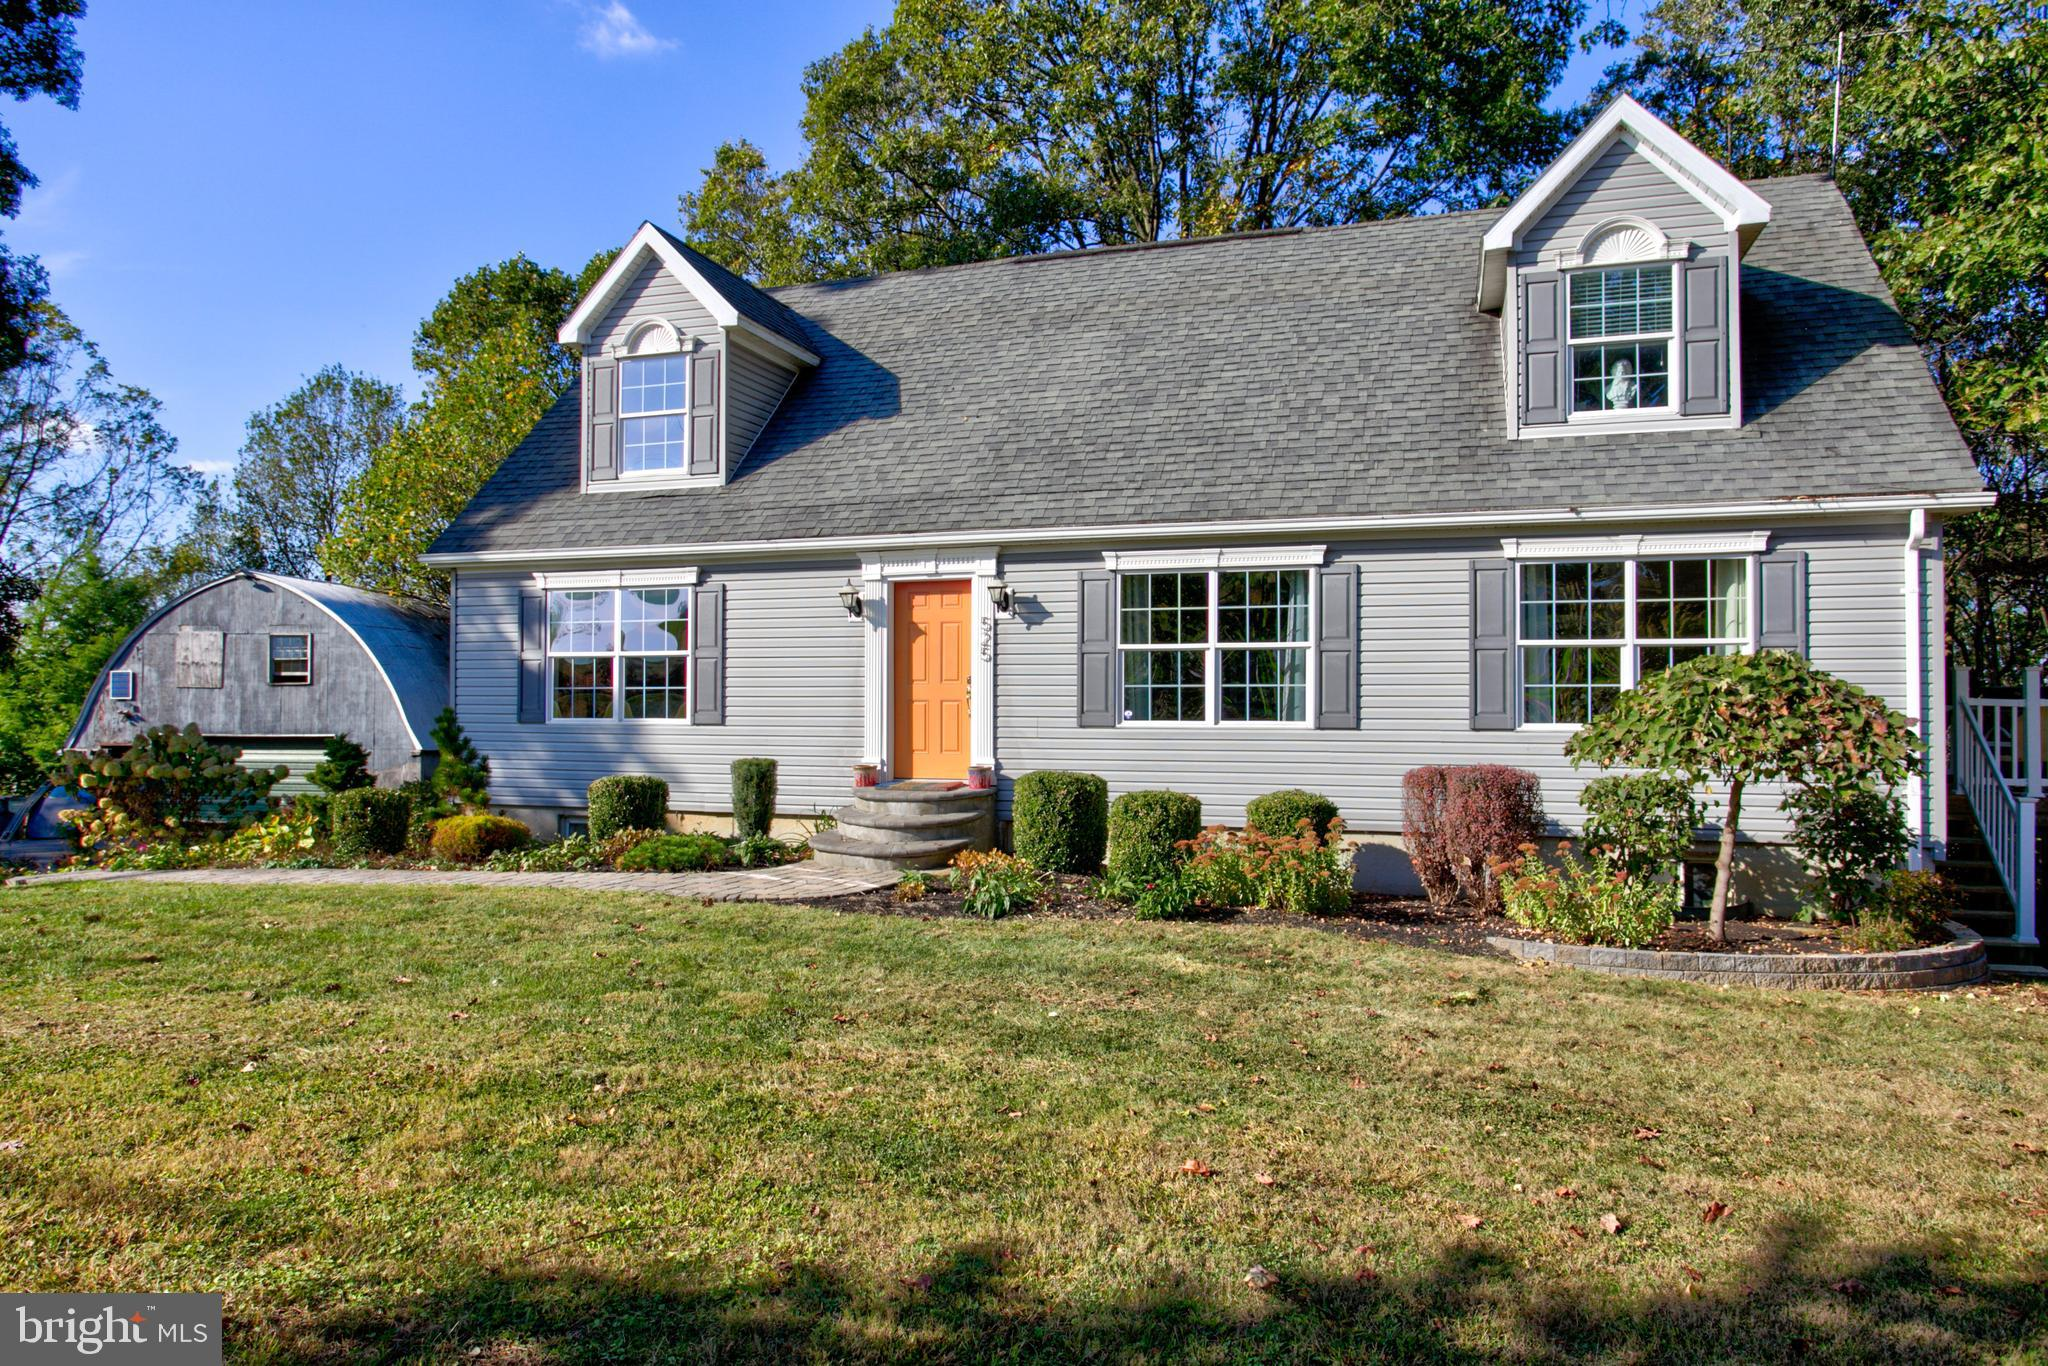 525 MARTIC HEIGHTS DRIVE, HOLTWOOD, PA 17532